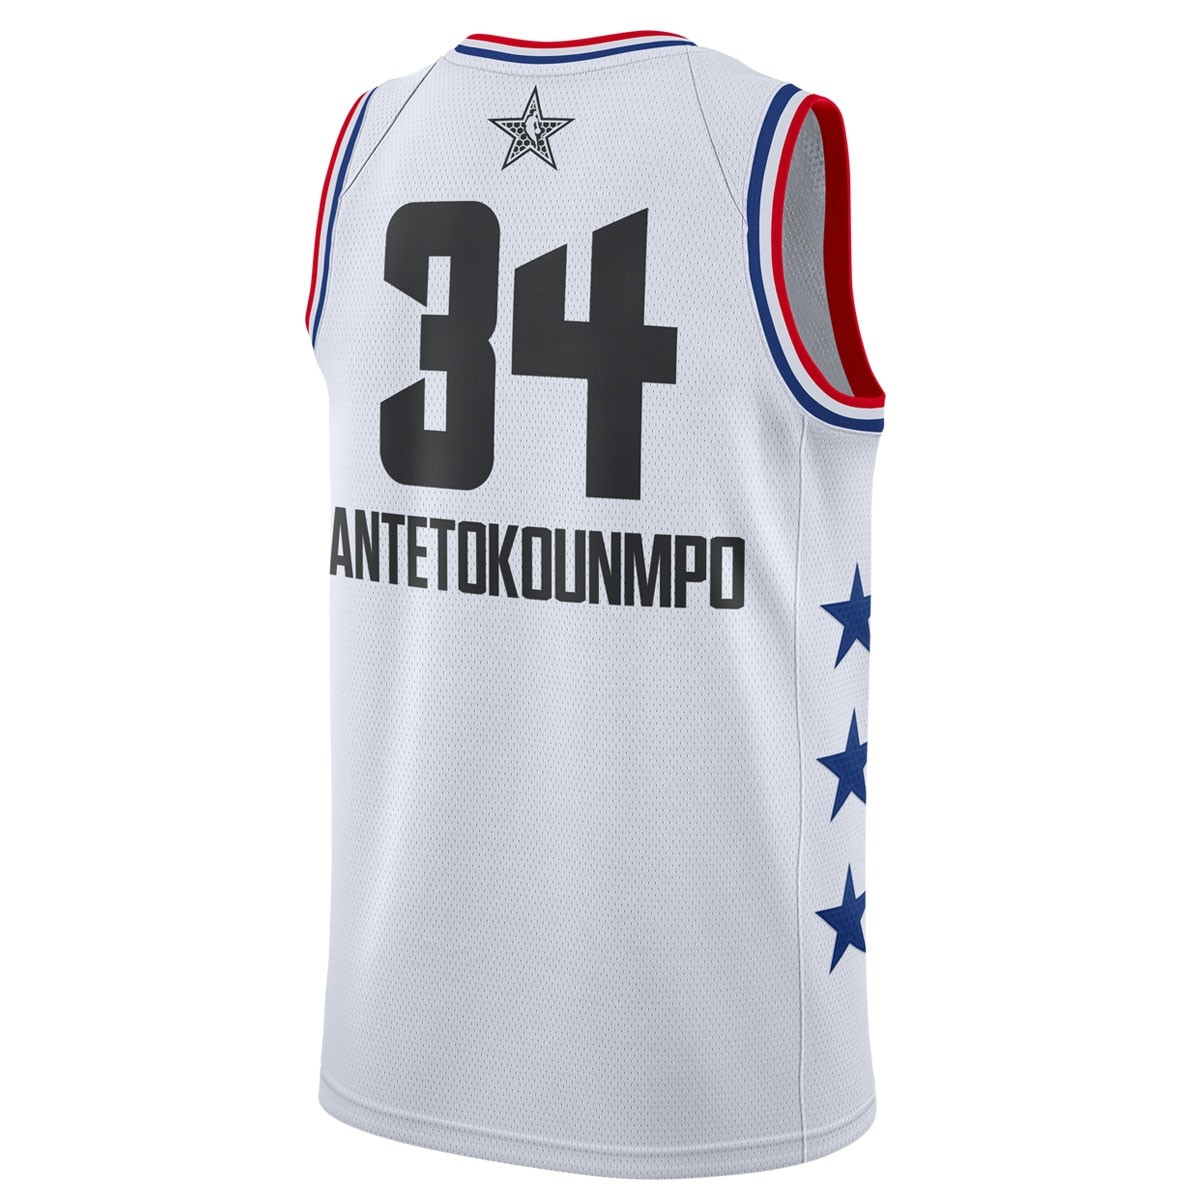 Jordan Swigman Jersey All-Star Antetokounmpo edition 'White' AQ7297-100